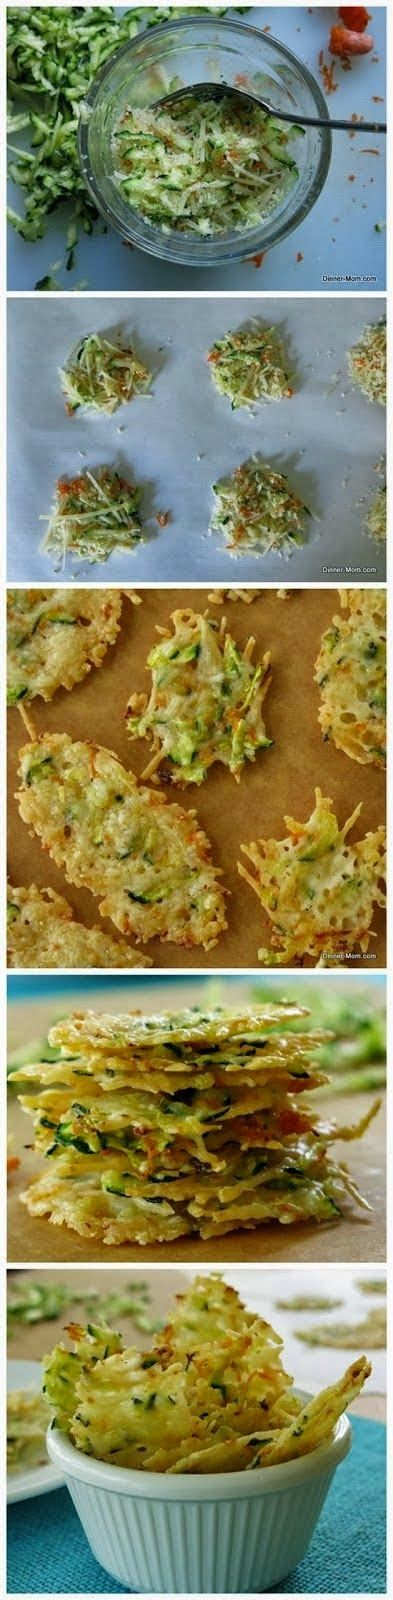 Food Blog: Parmesan Cheese Crisps Laced with Zucchini & Carrots